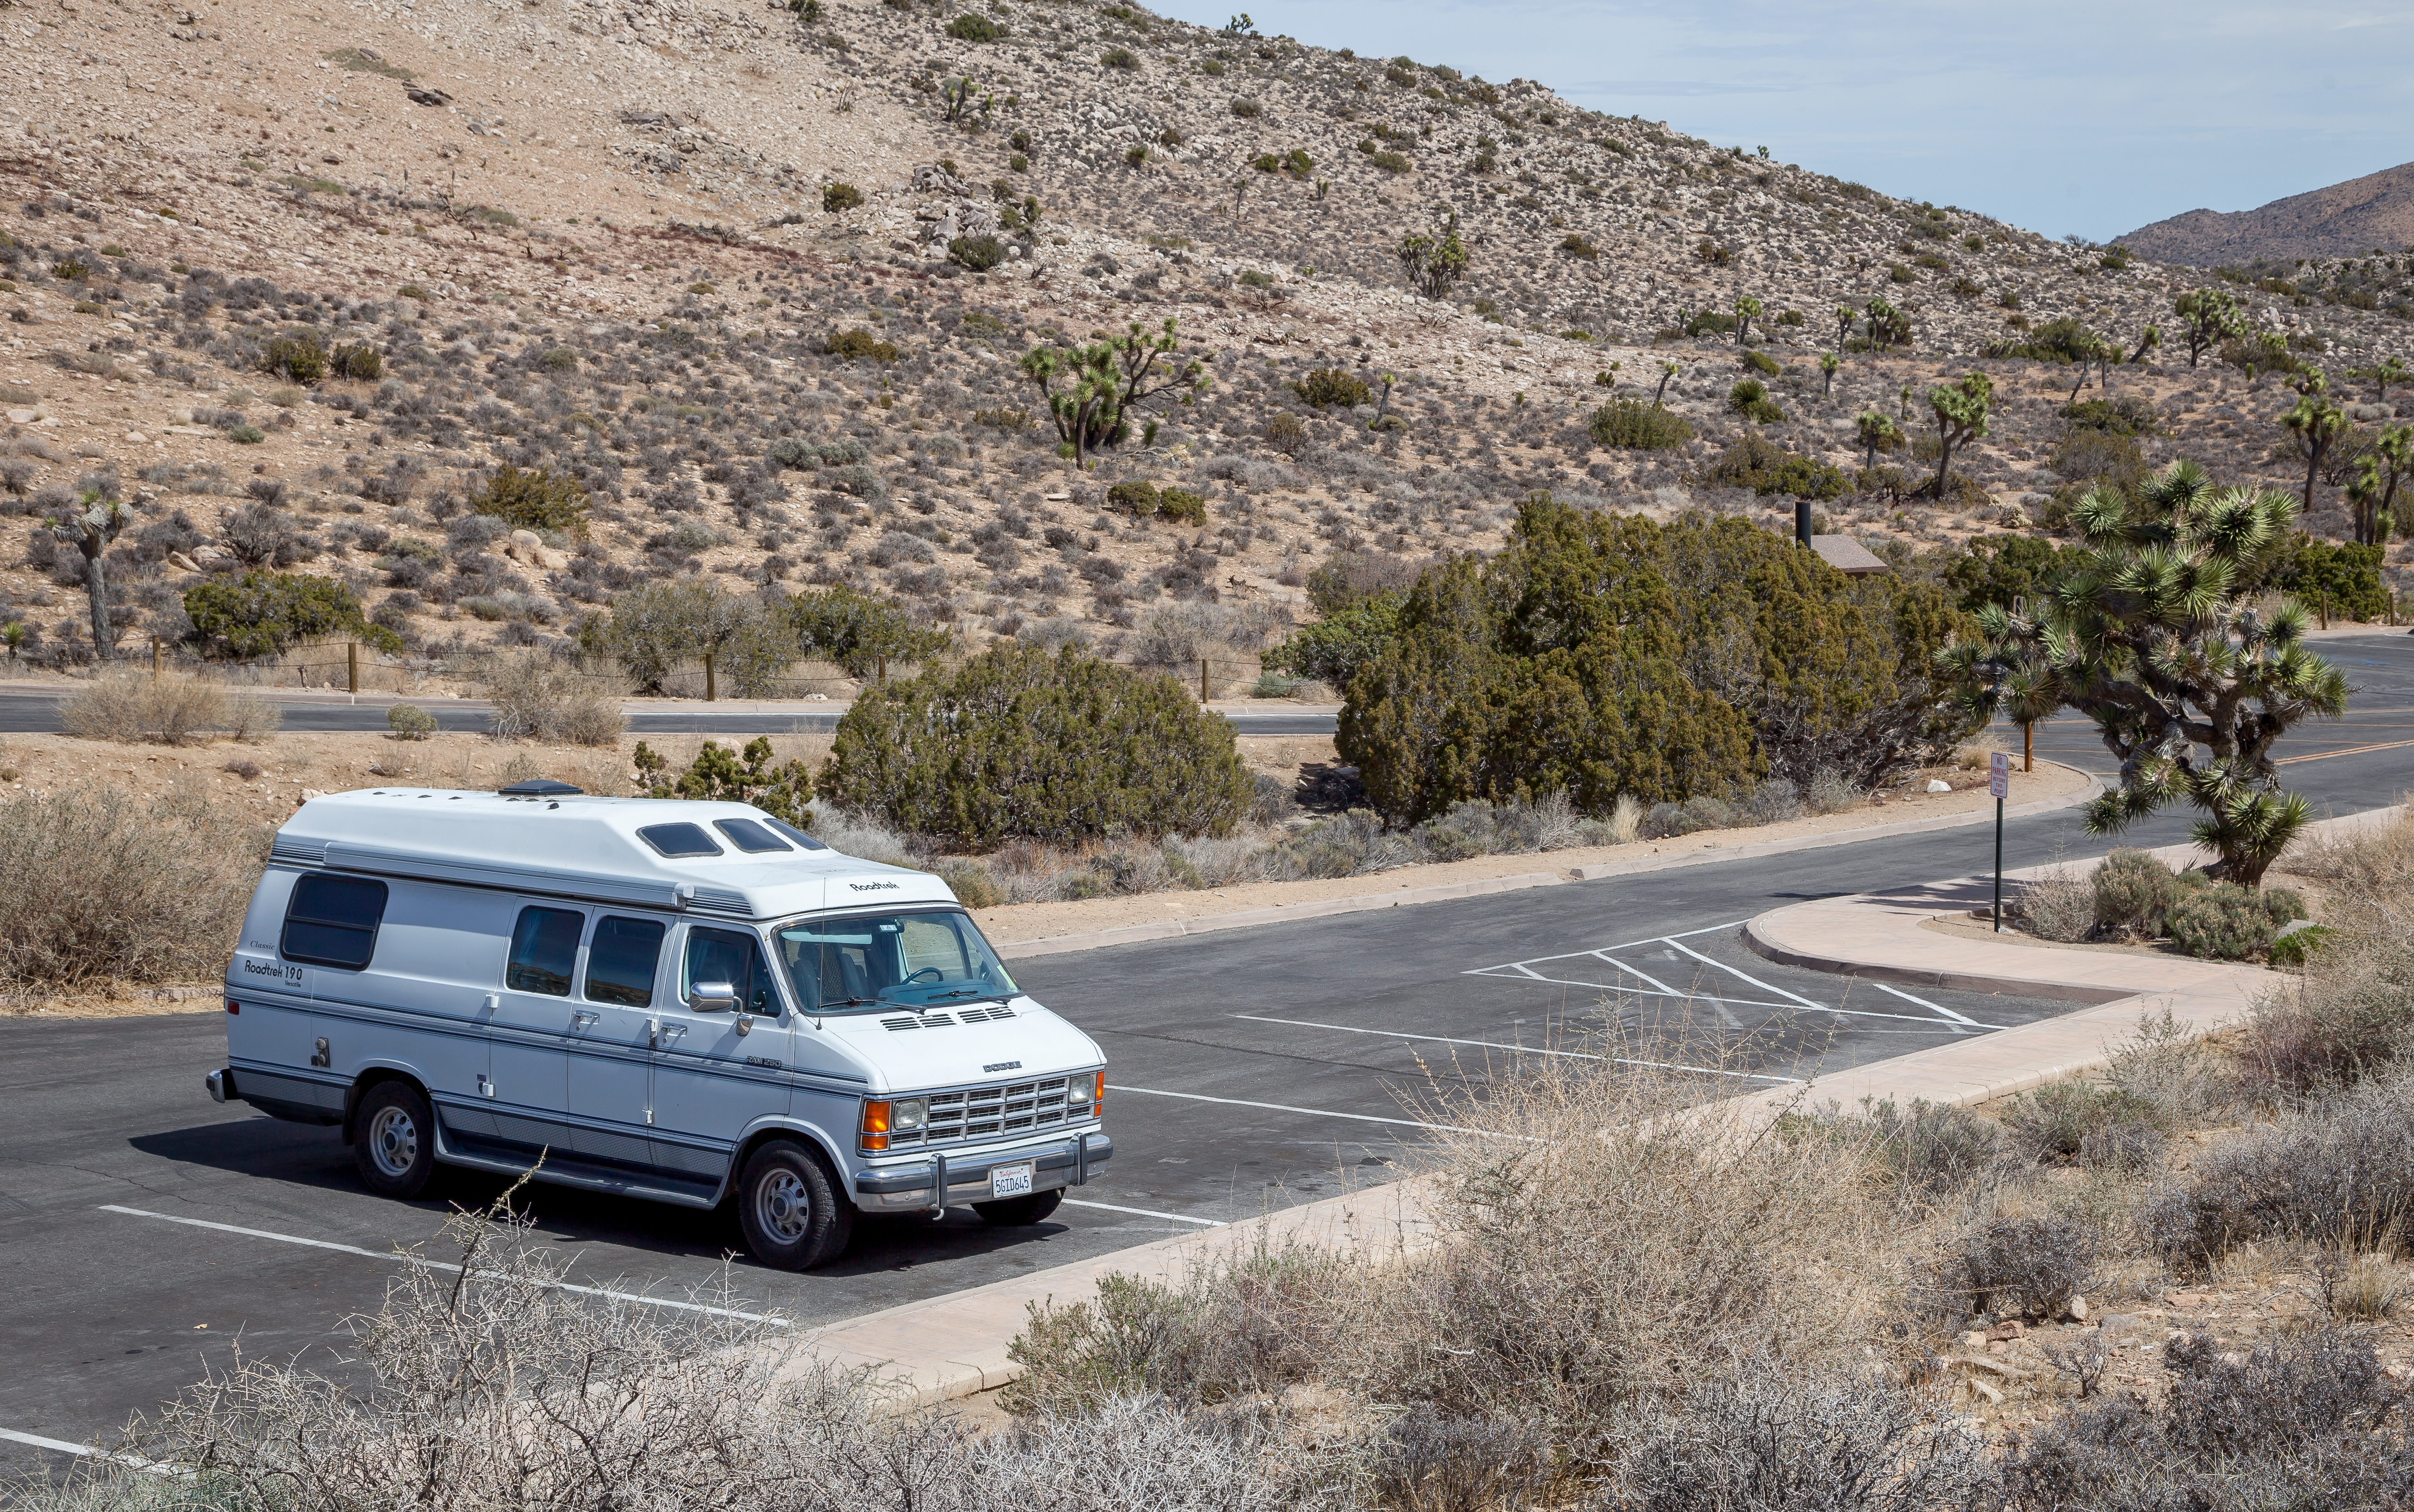 my van in a parking lot in Joshua Tree National Park